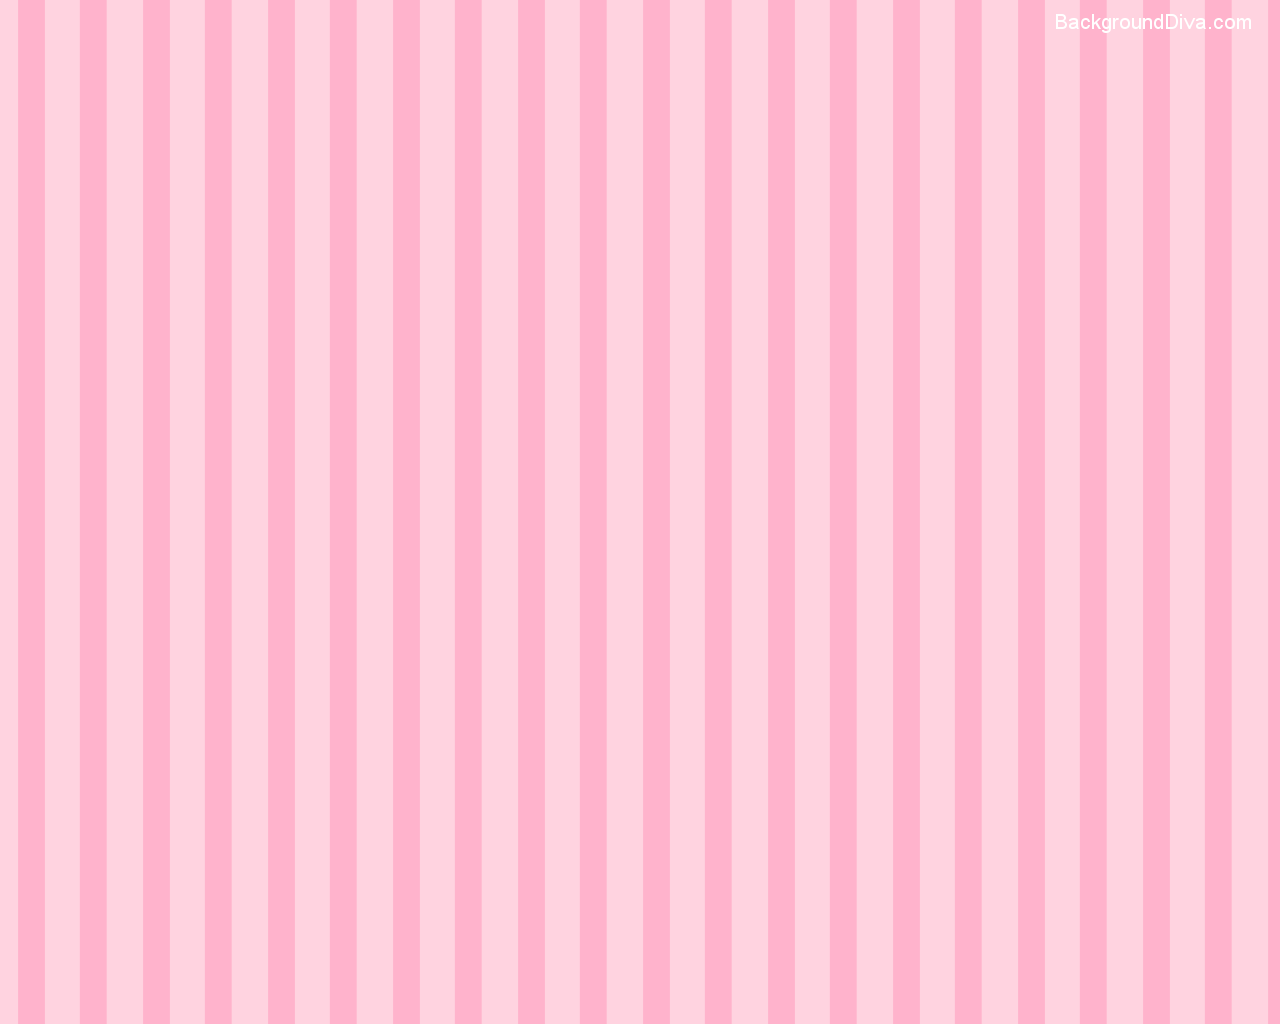 Light Pink Striped Wallpaper Images Pictures   Becuo 1280x1024